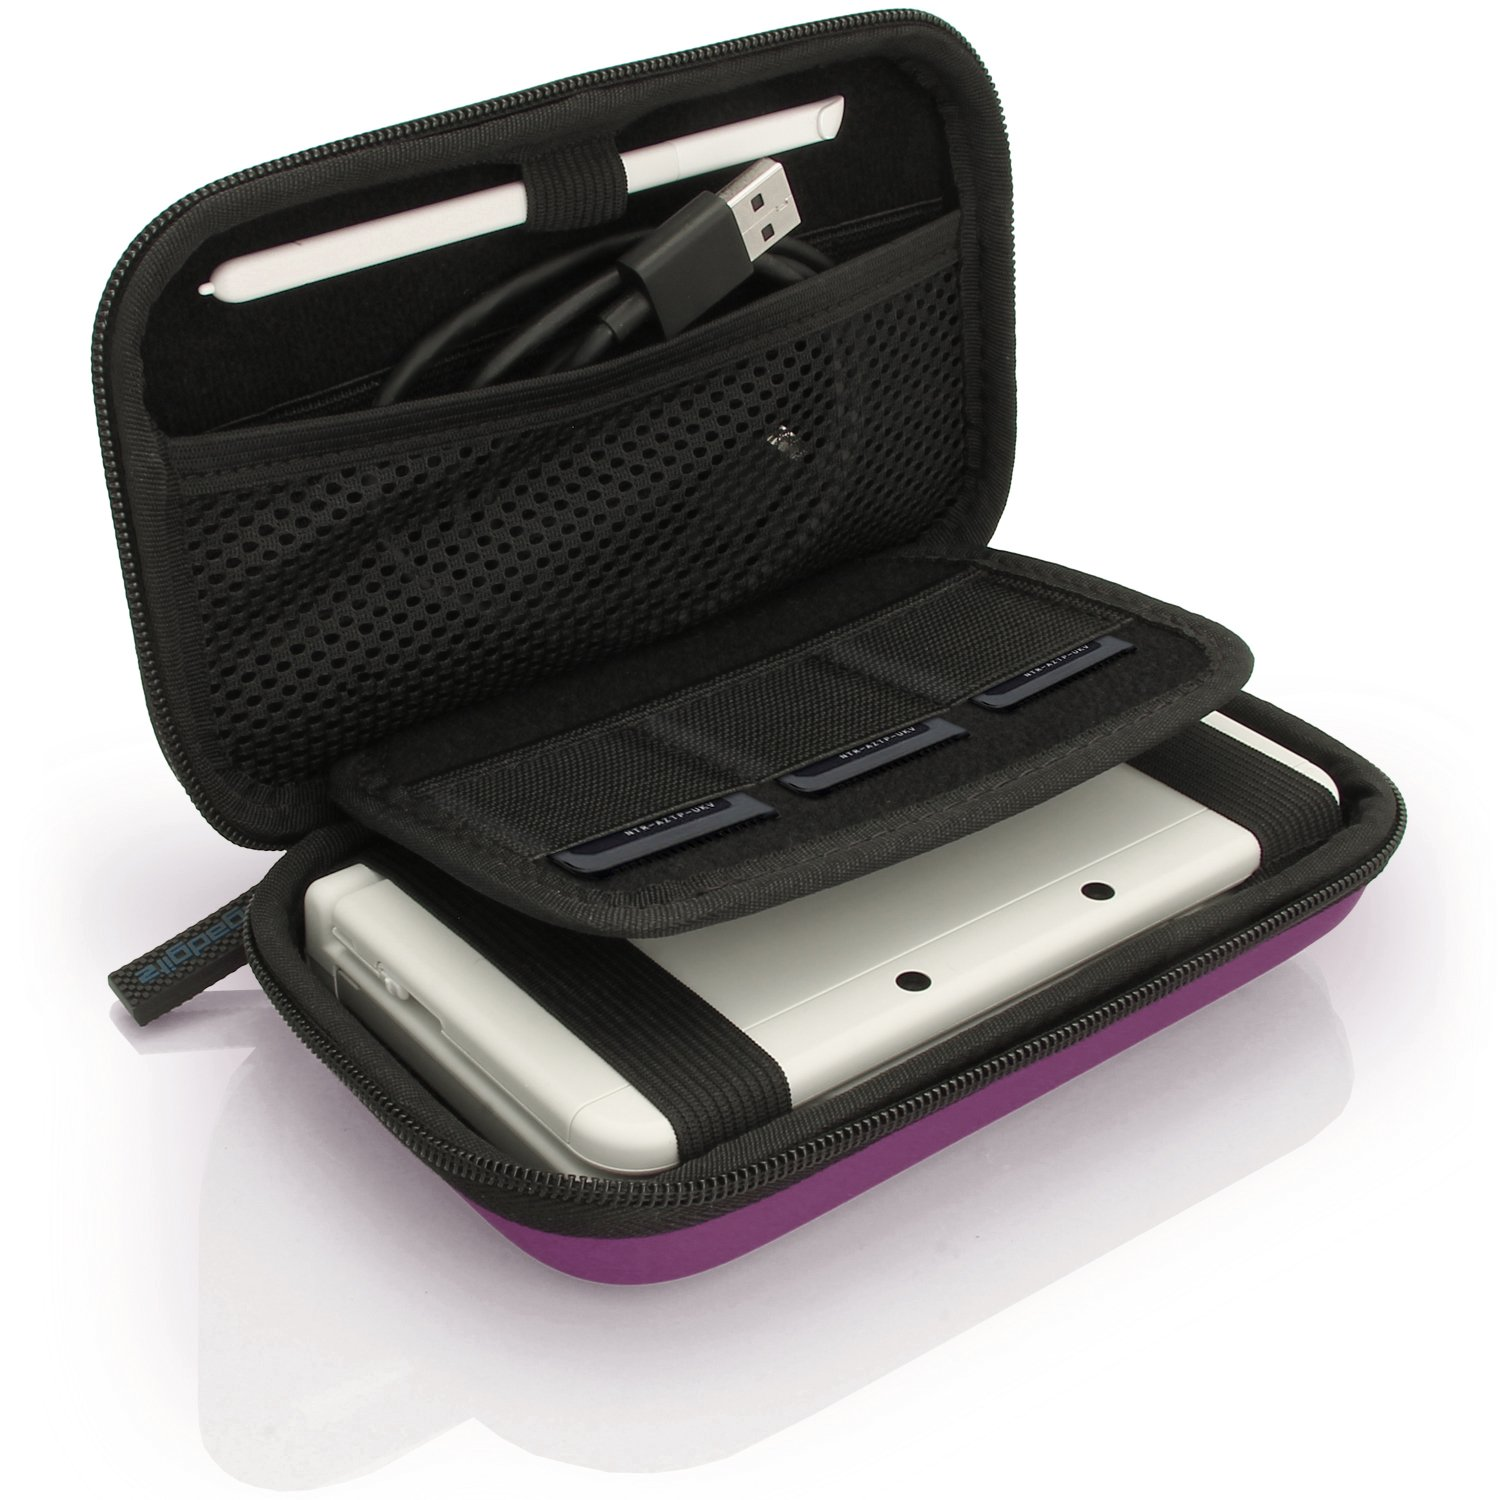 Amazon.com: iGadgitz EVA - Carcasa para Nintendo Cases 3DS ...